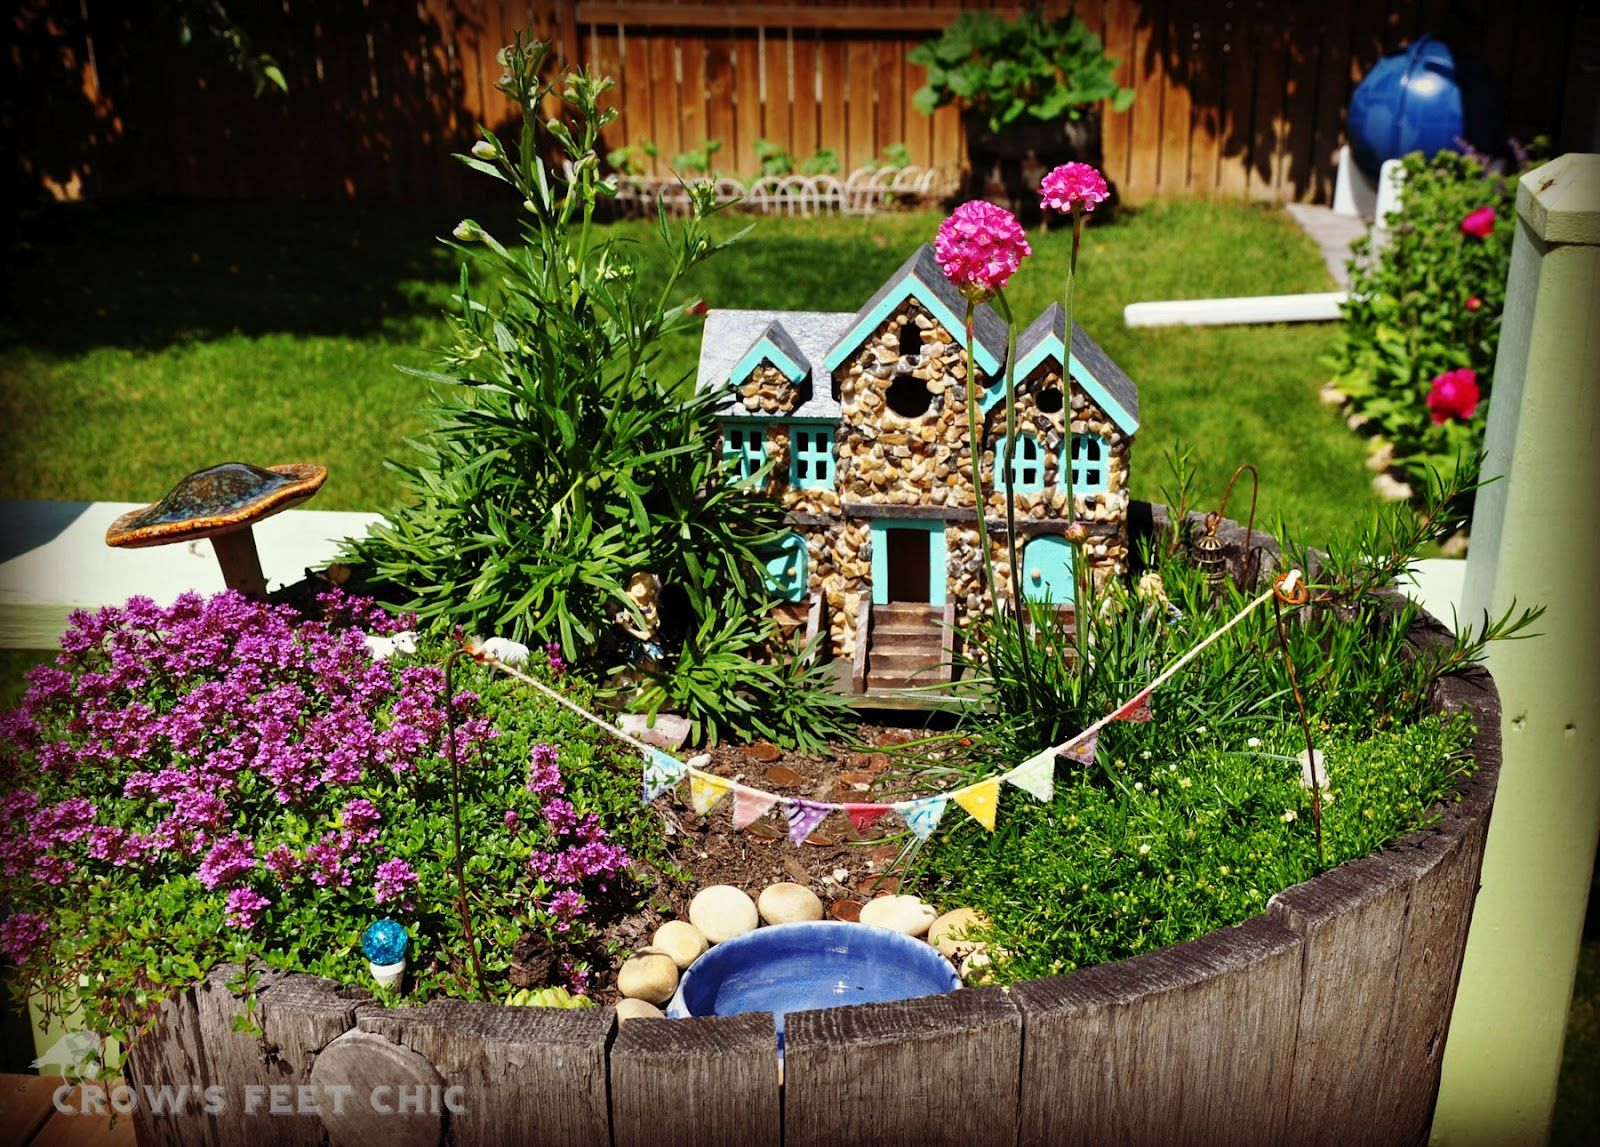 Gnome Garden Ideas 33 best garden gnome village images on pinterest Fairy Garden Ideas Better Gnomes And Fairy Gardens